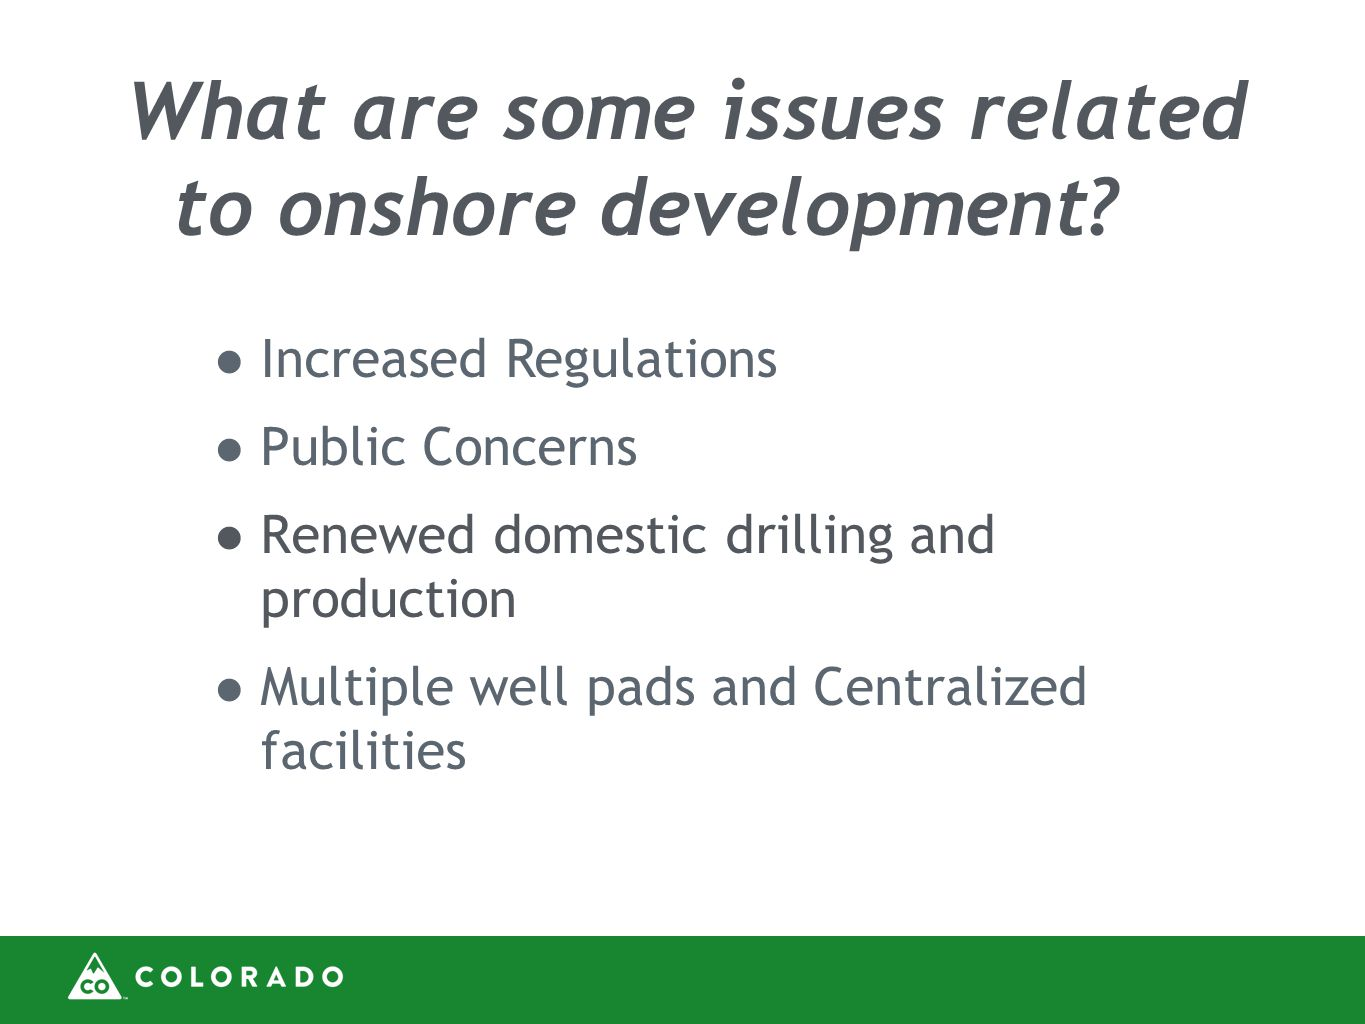 ●Increased Regulations ●Public Concerns ●Renewed domestic drilling and production ●Multiple well pads and Centralized facilities